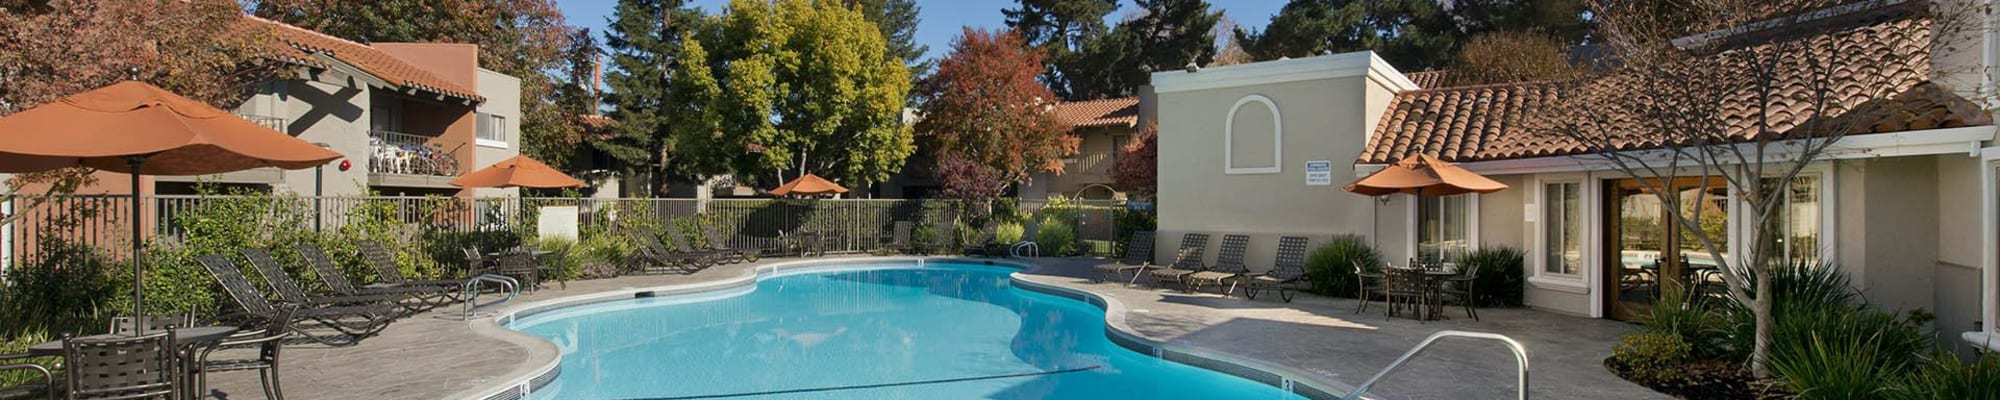 Amenities at La Valencia Apartment Homes in Campbell, California